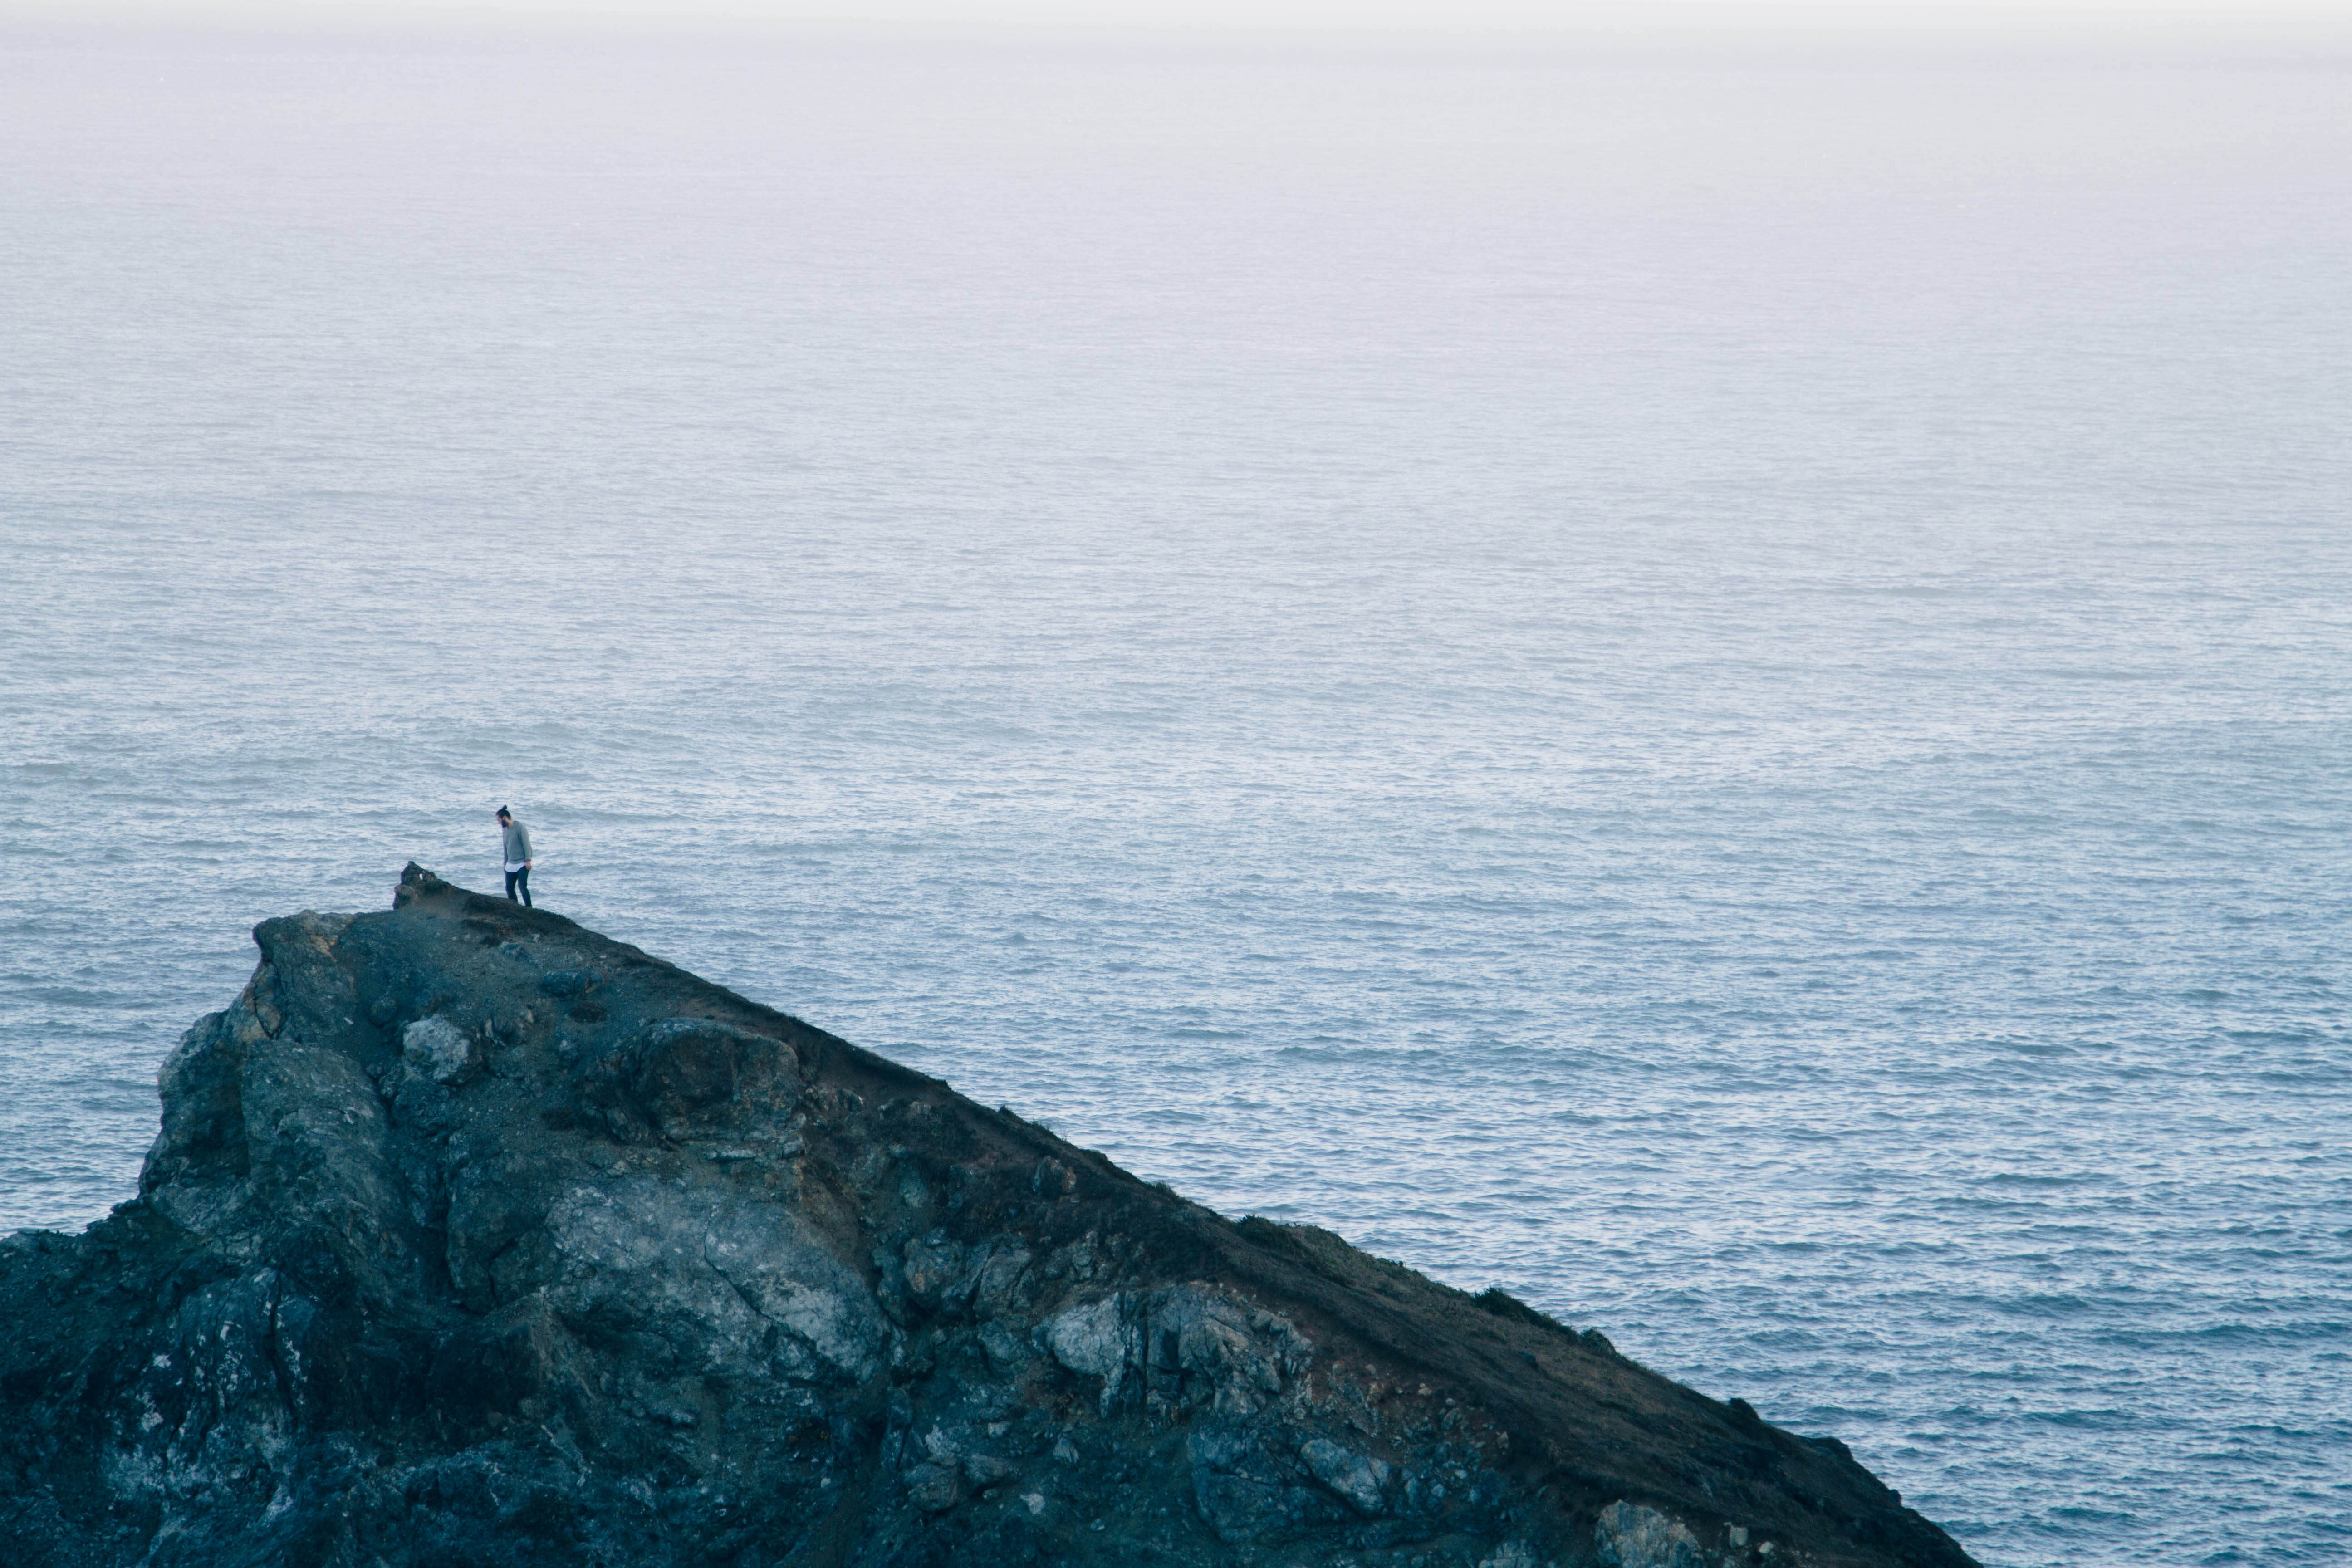 person standing on gray rock formation near body of water during daytime